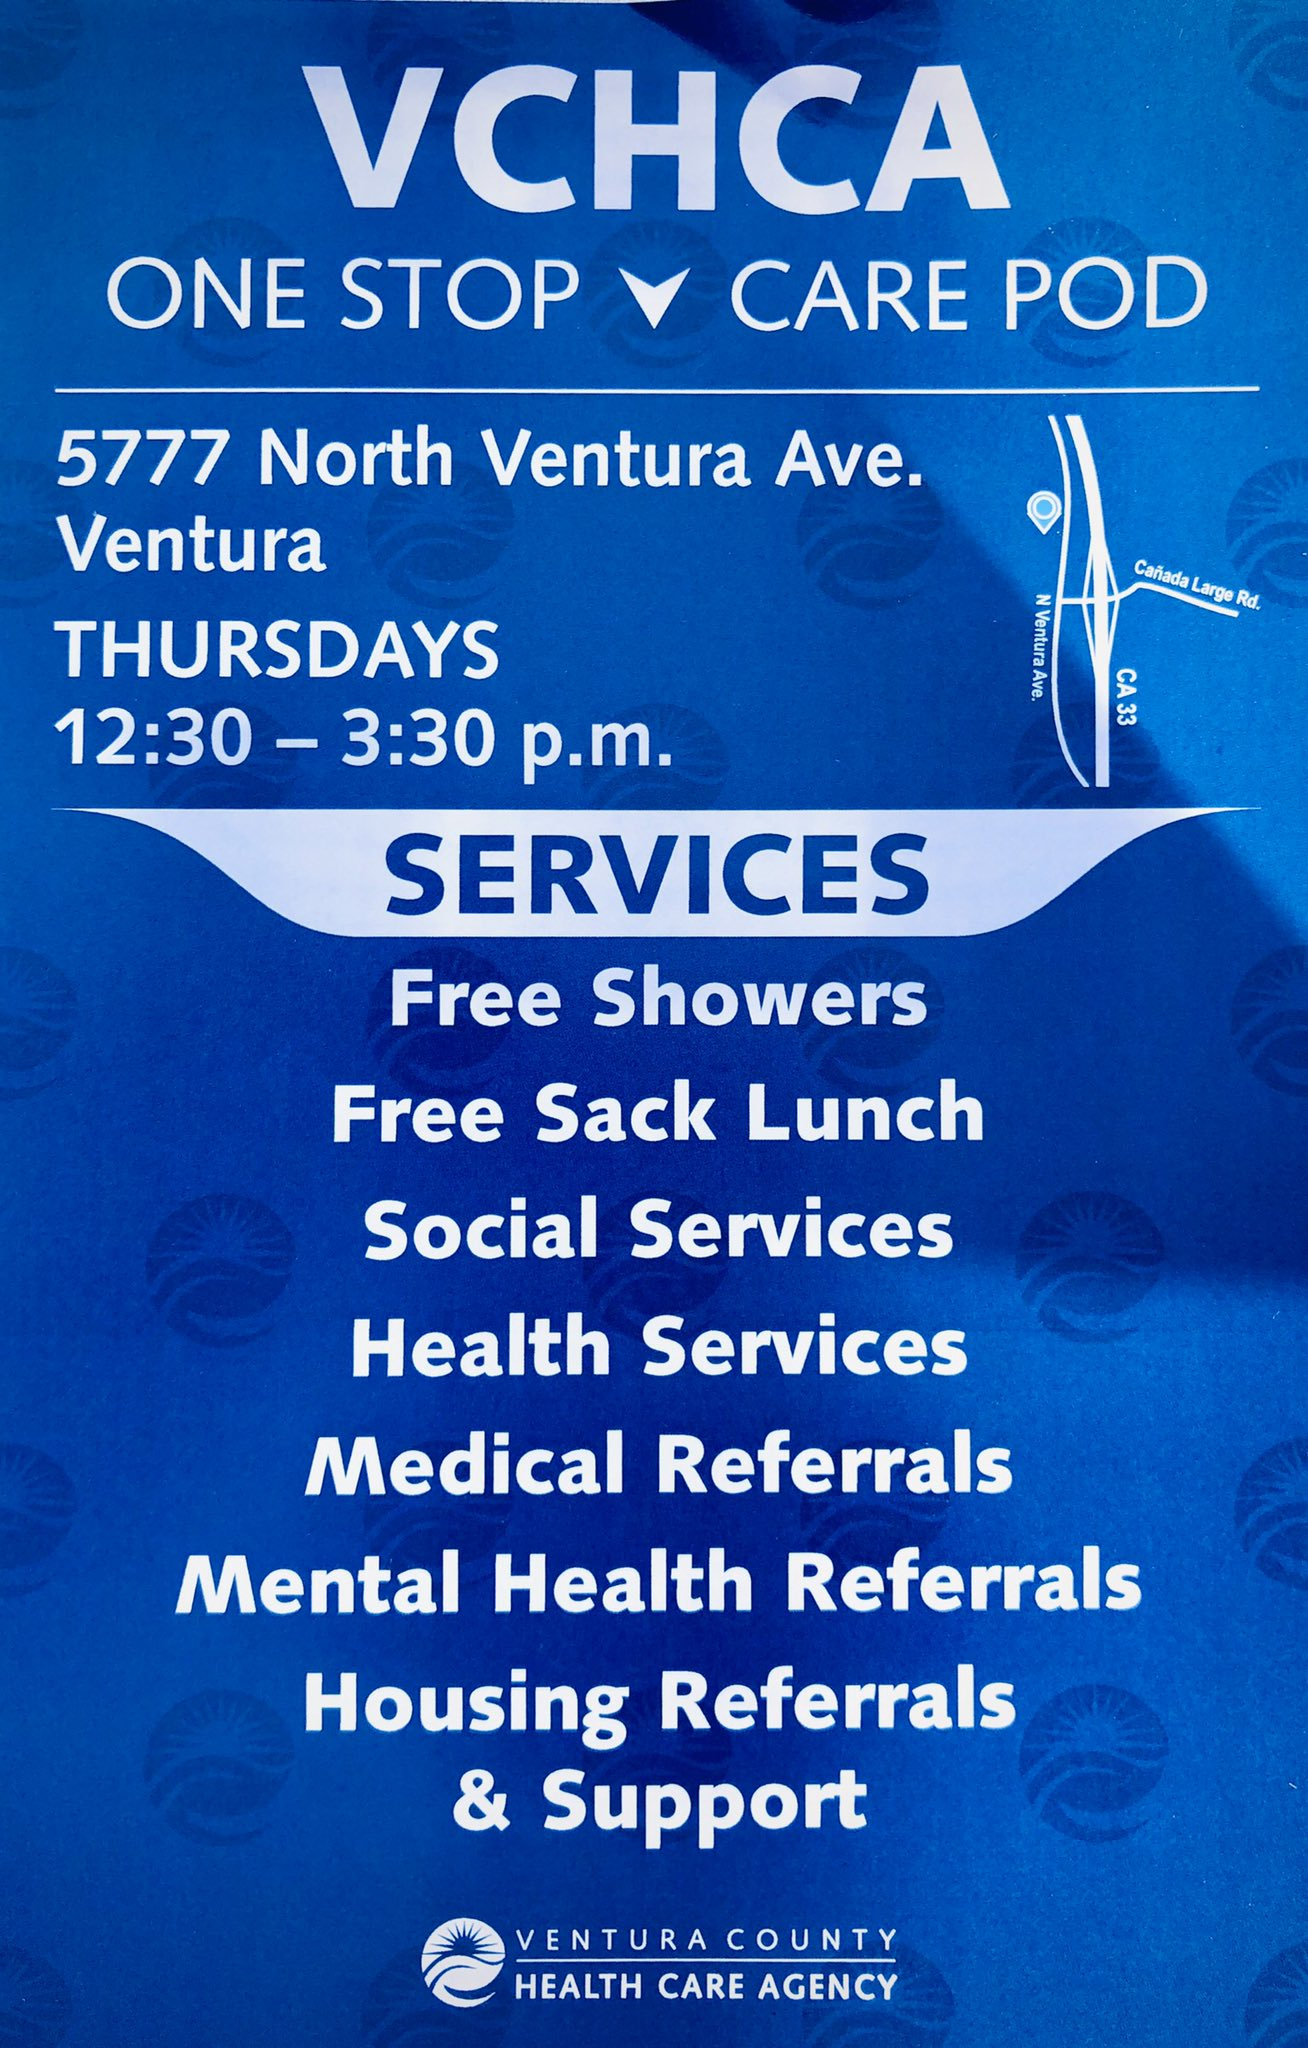 Thursdays VCHCA One Stop Care Pod Ventura